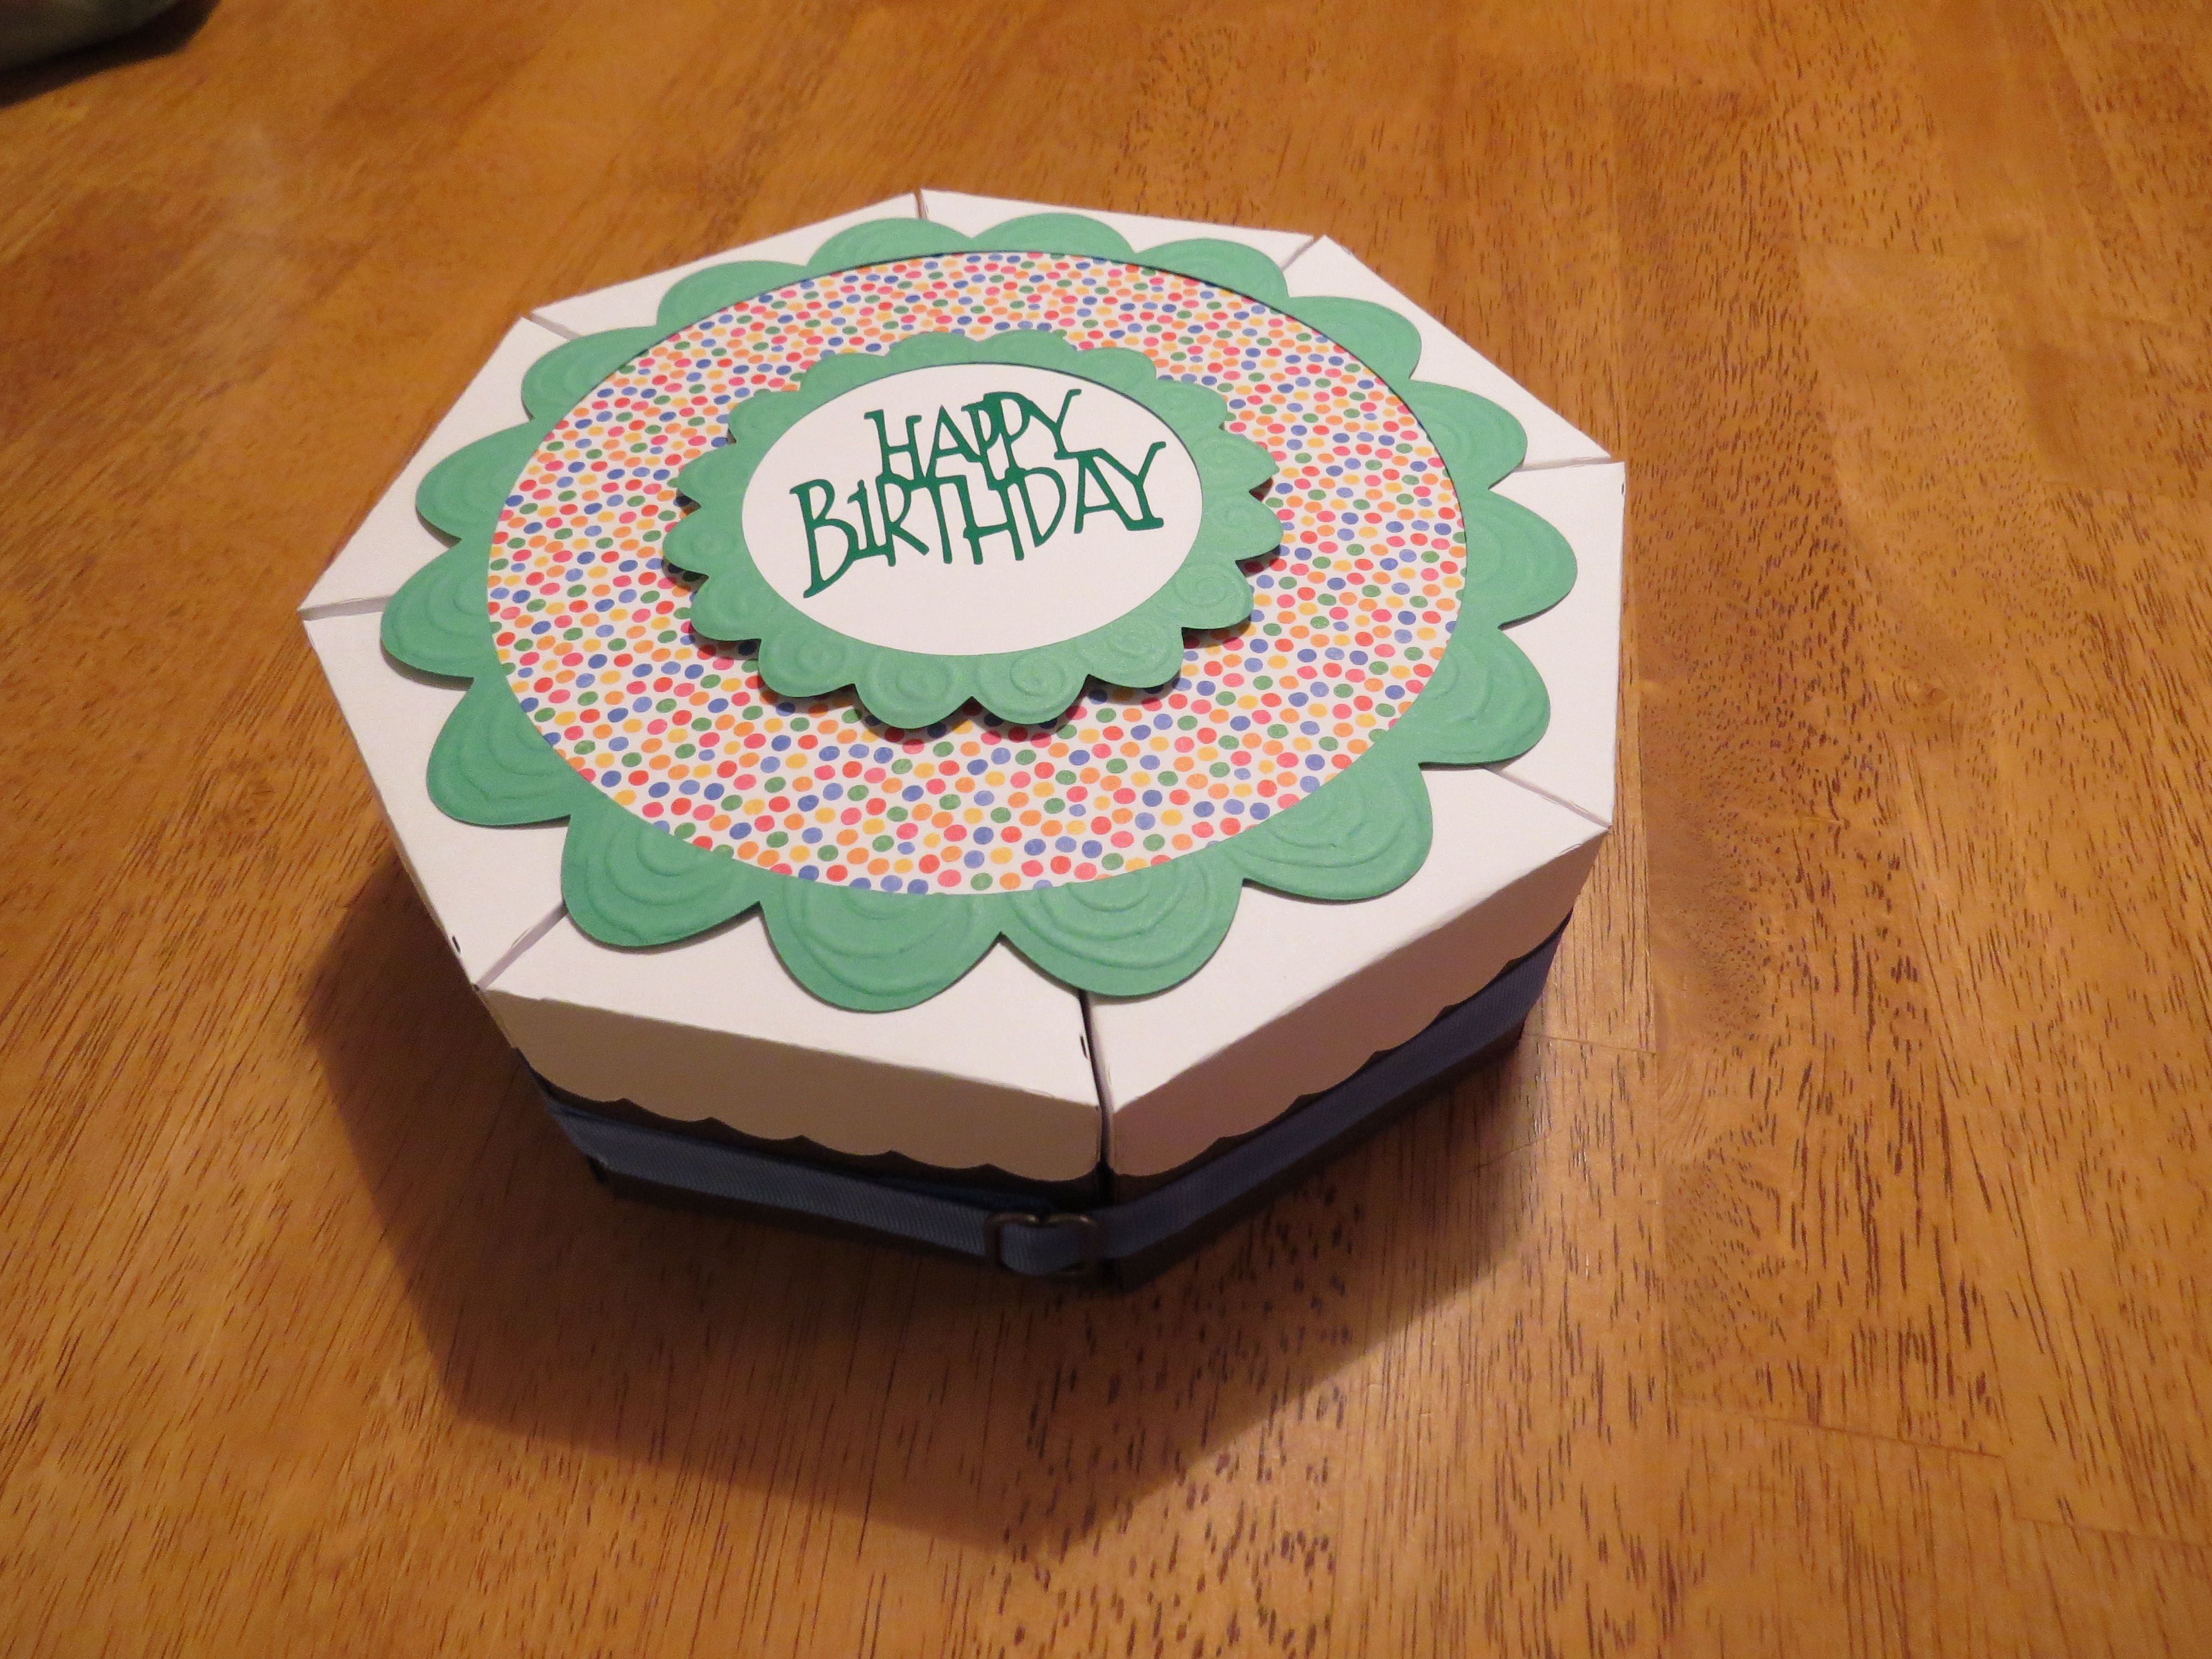 Birthday cake boxes 8 slices filled with candy and